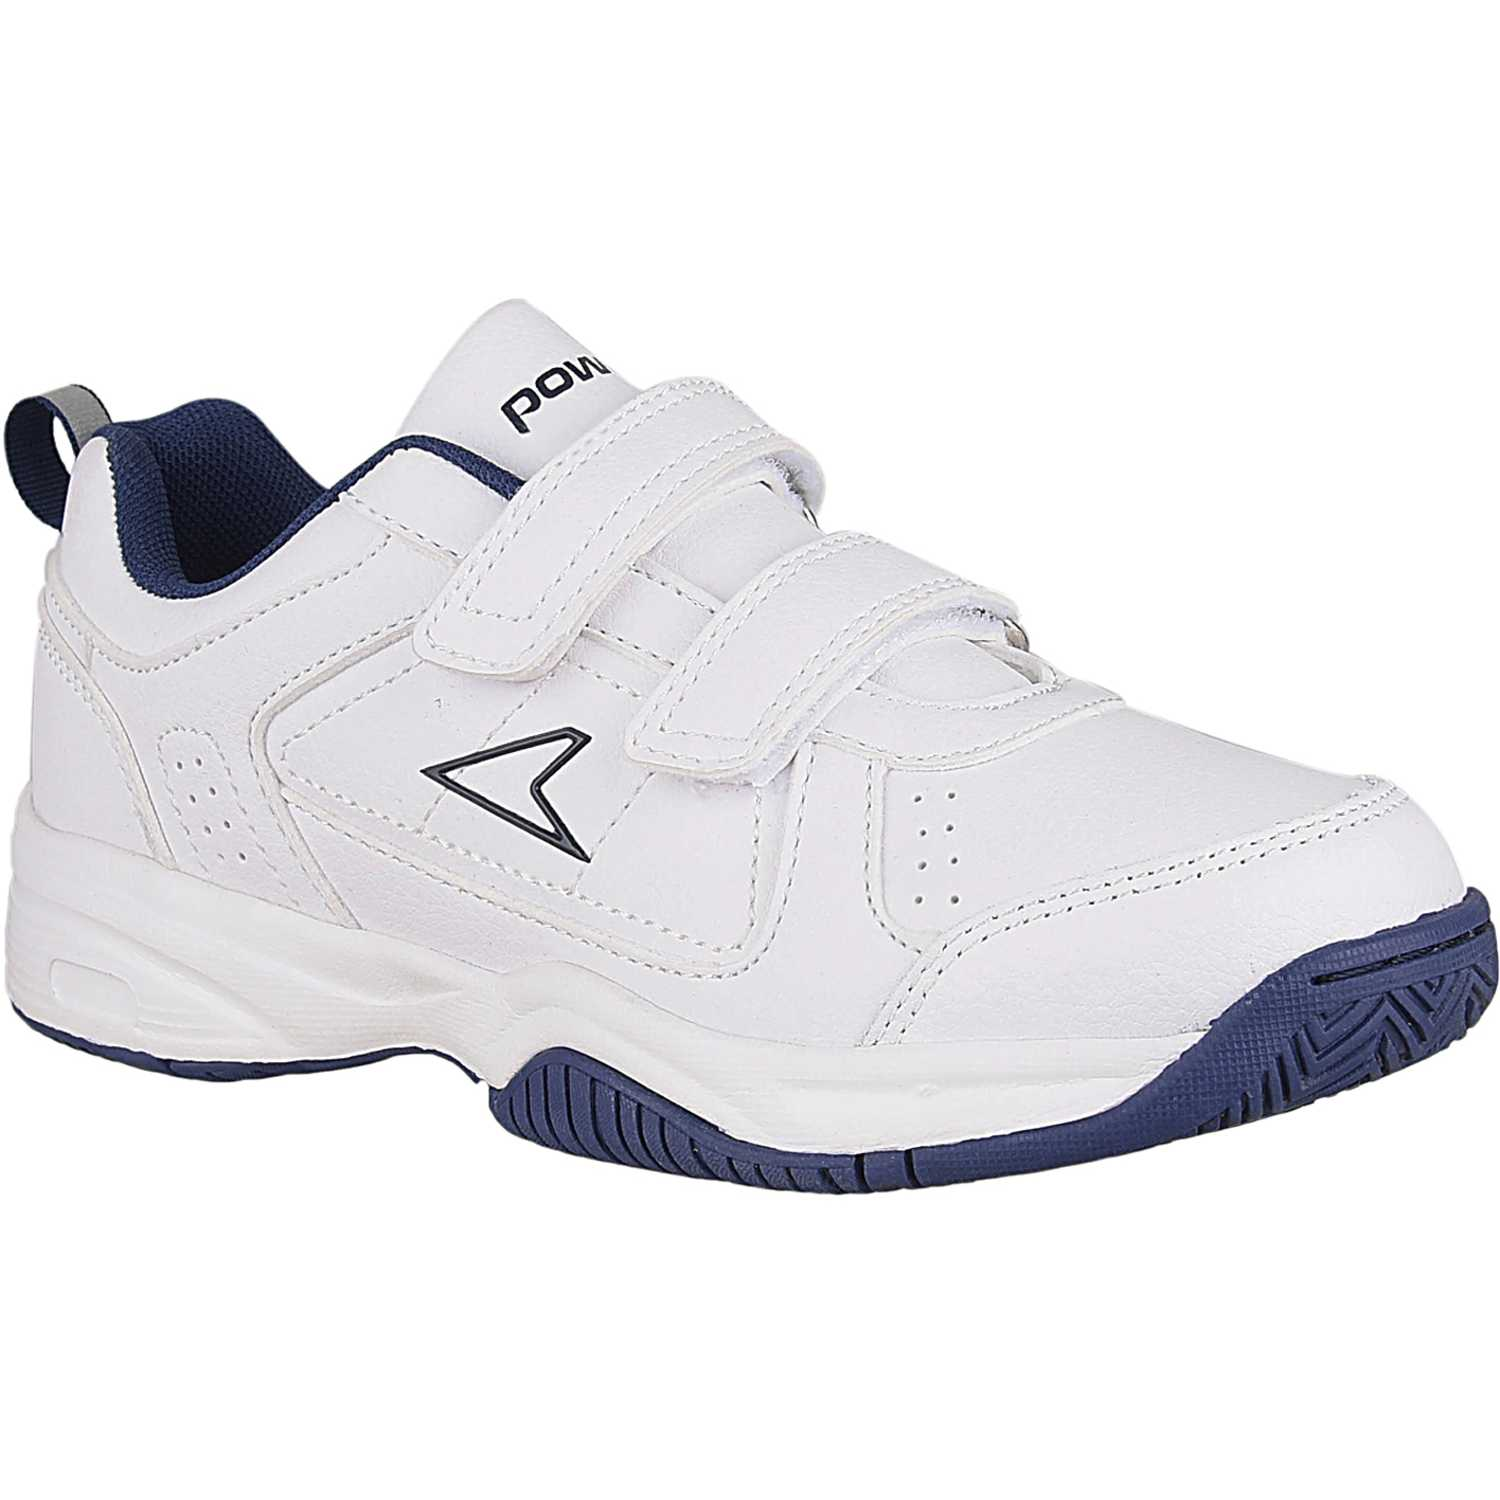 Walking de Niño Power Blanco / azul chip mission vel 1306